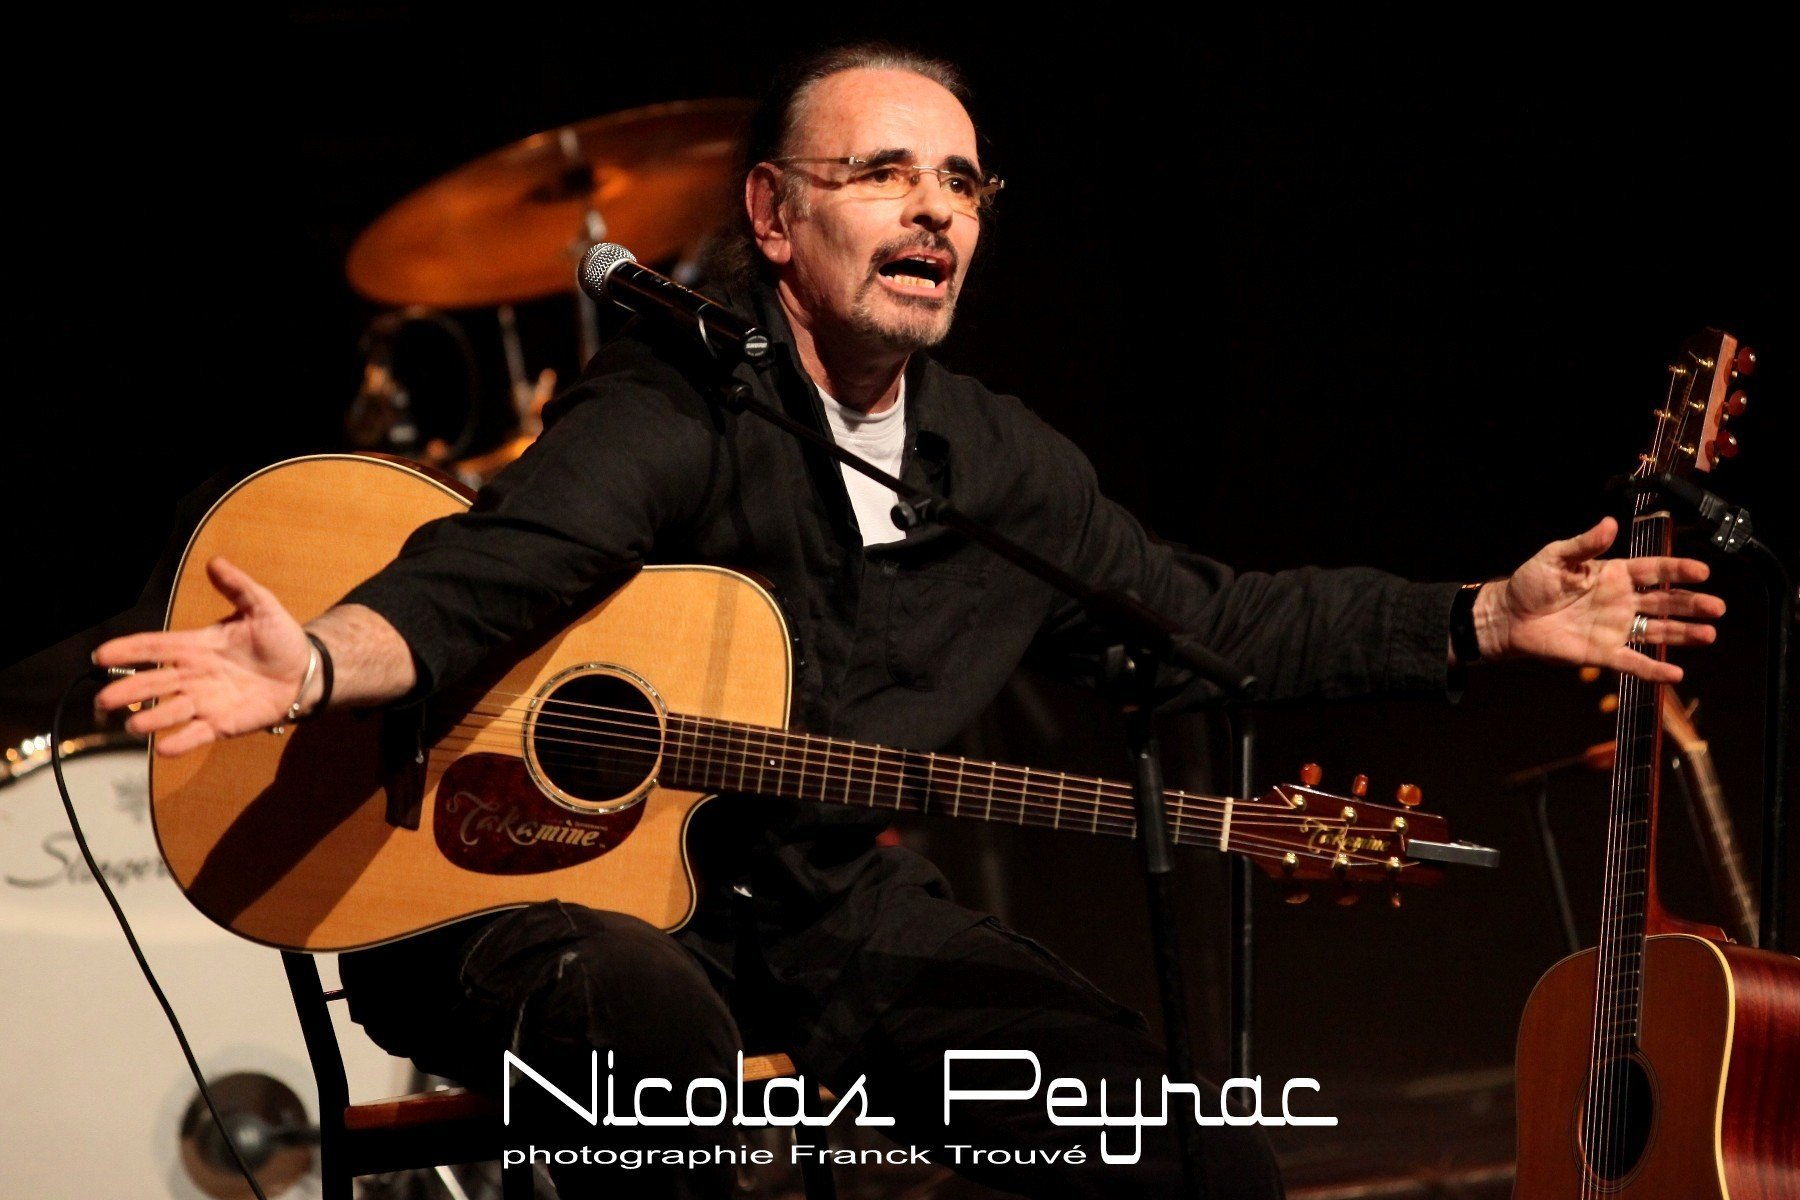 nicolas peyrac photo franck trouve